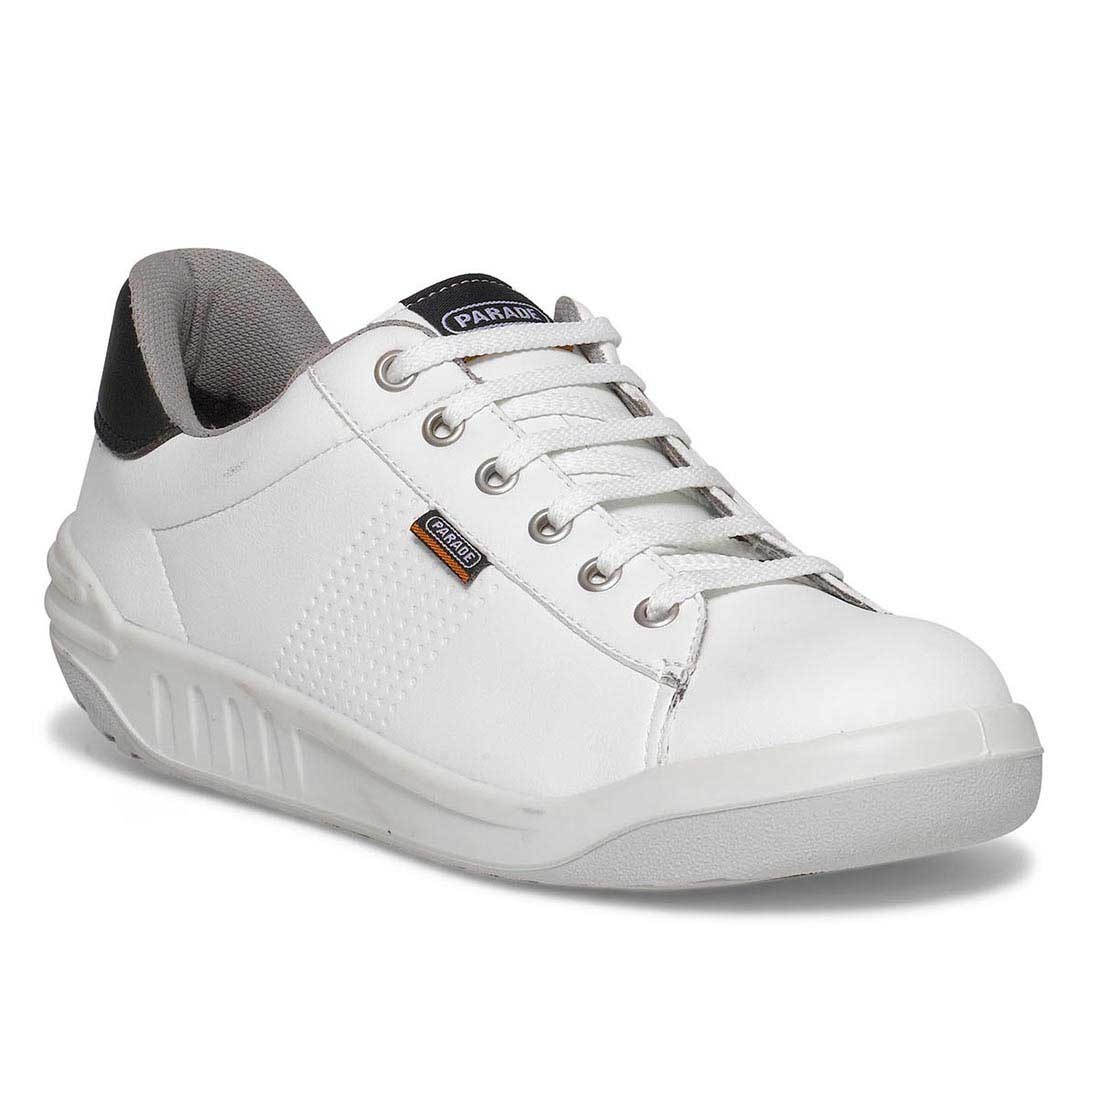 Parade Jamma White and Black VPS Unisex Premium Safety Work Trainers